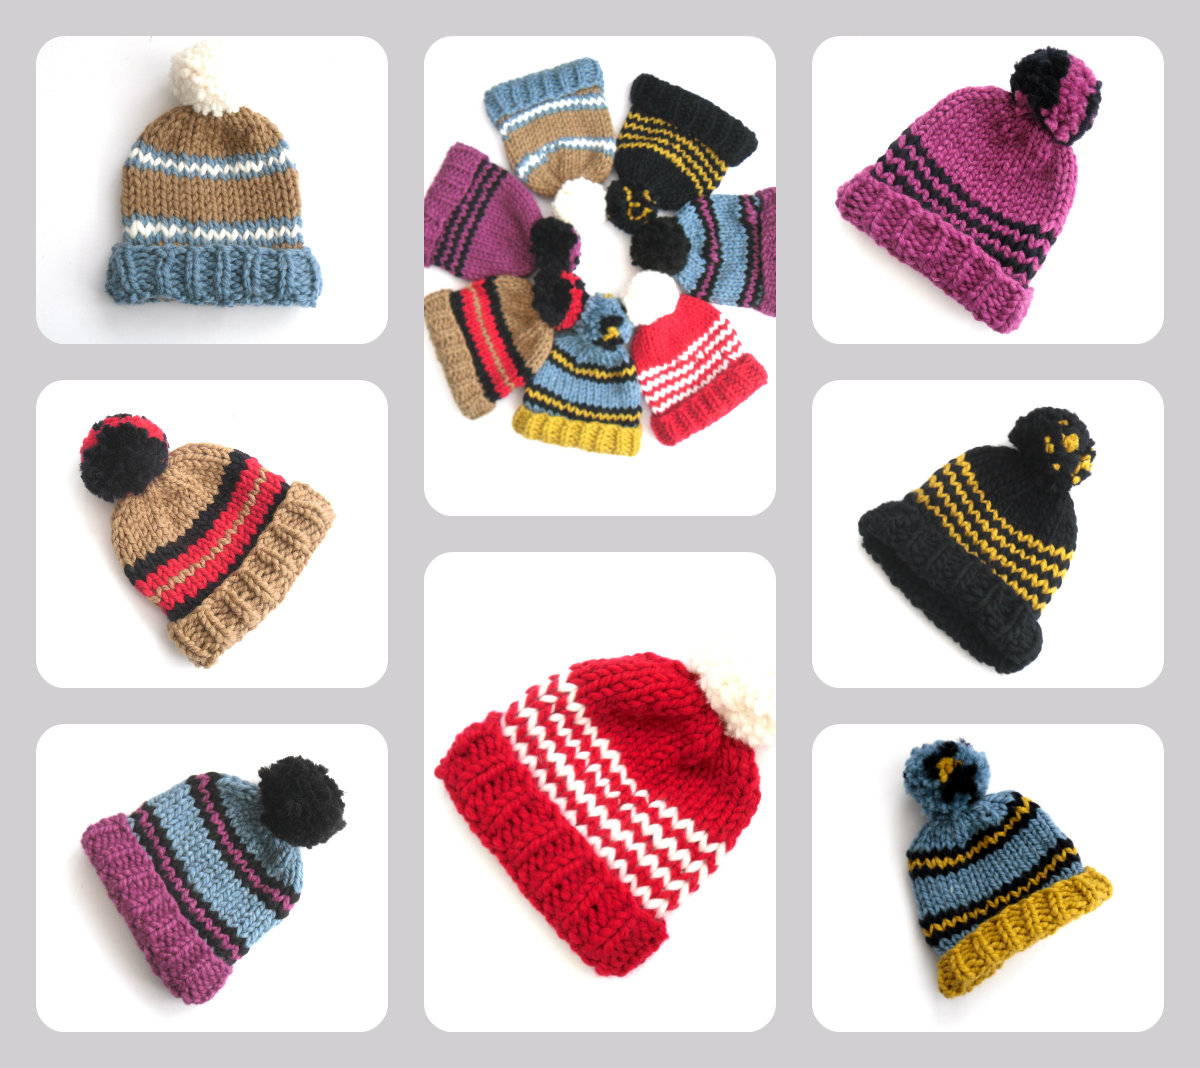 Striped wool hats